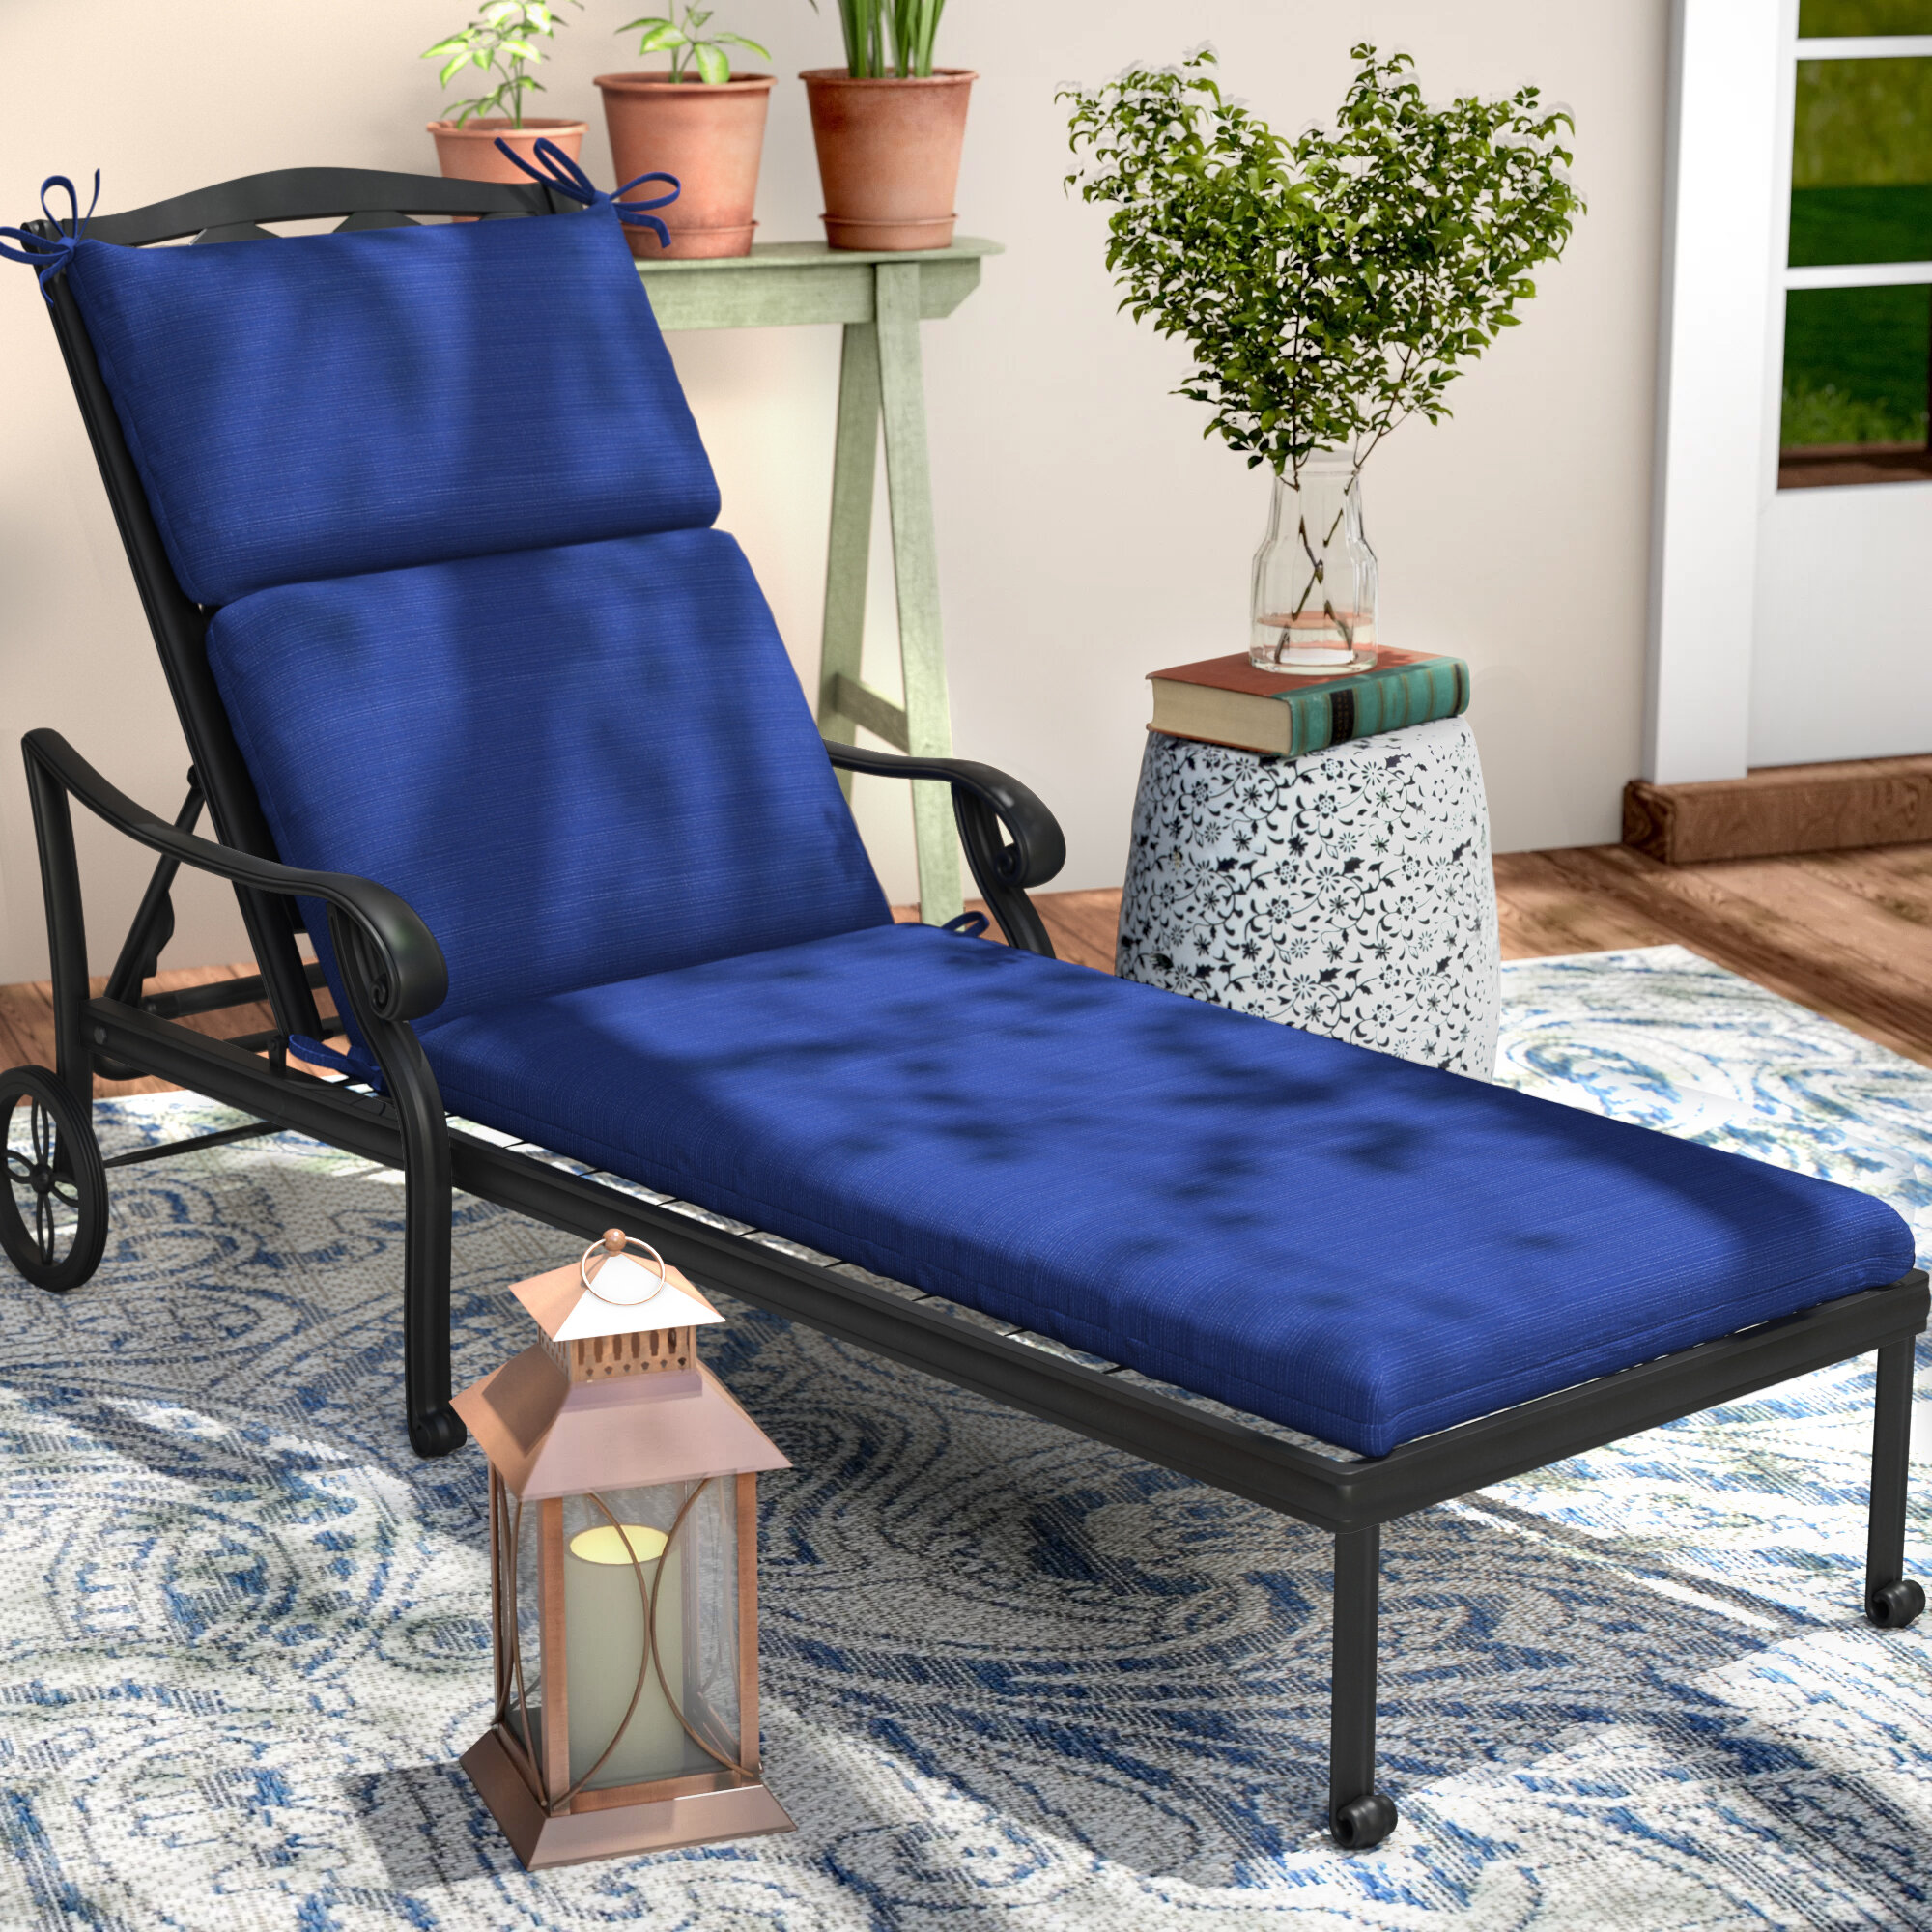 Darby Home Co Claiborne Indoor Outdoor Chaise Lounge Cushion Reviews Wayfair